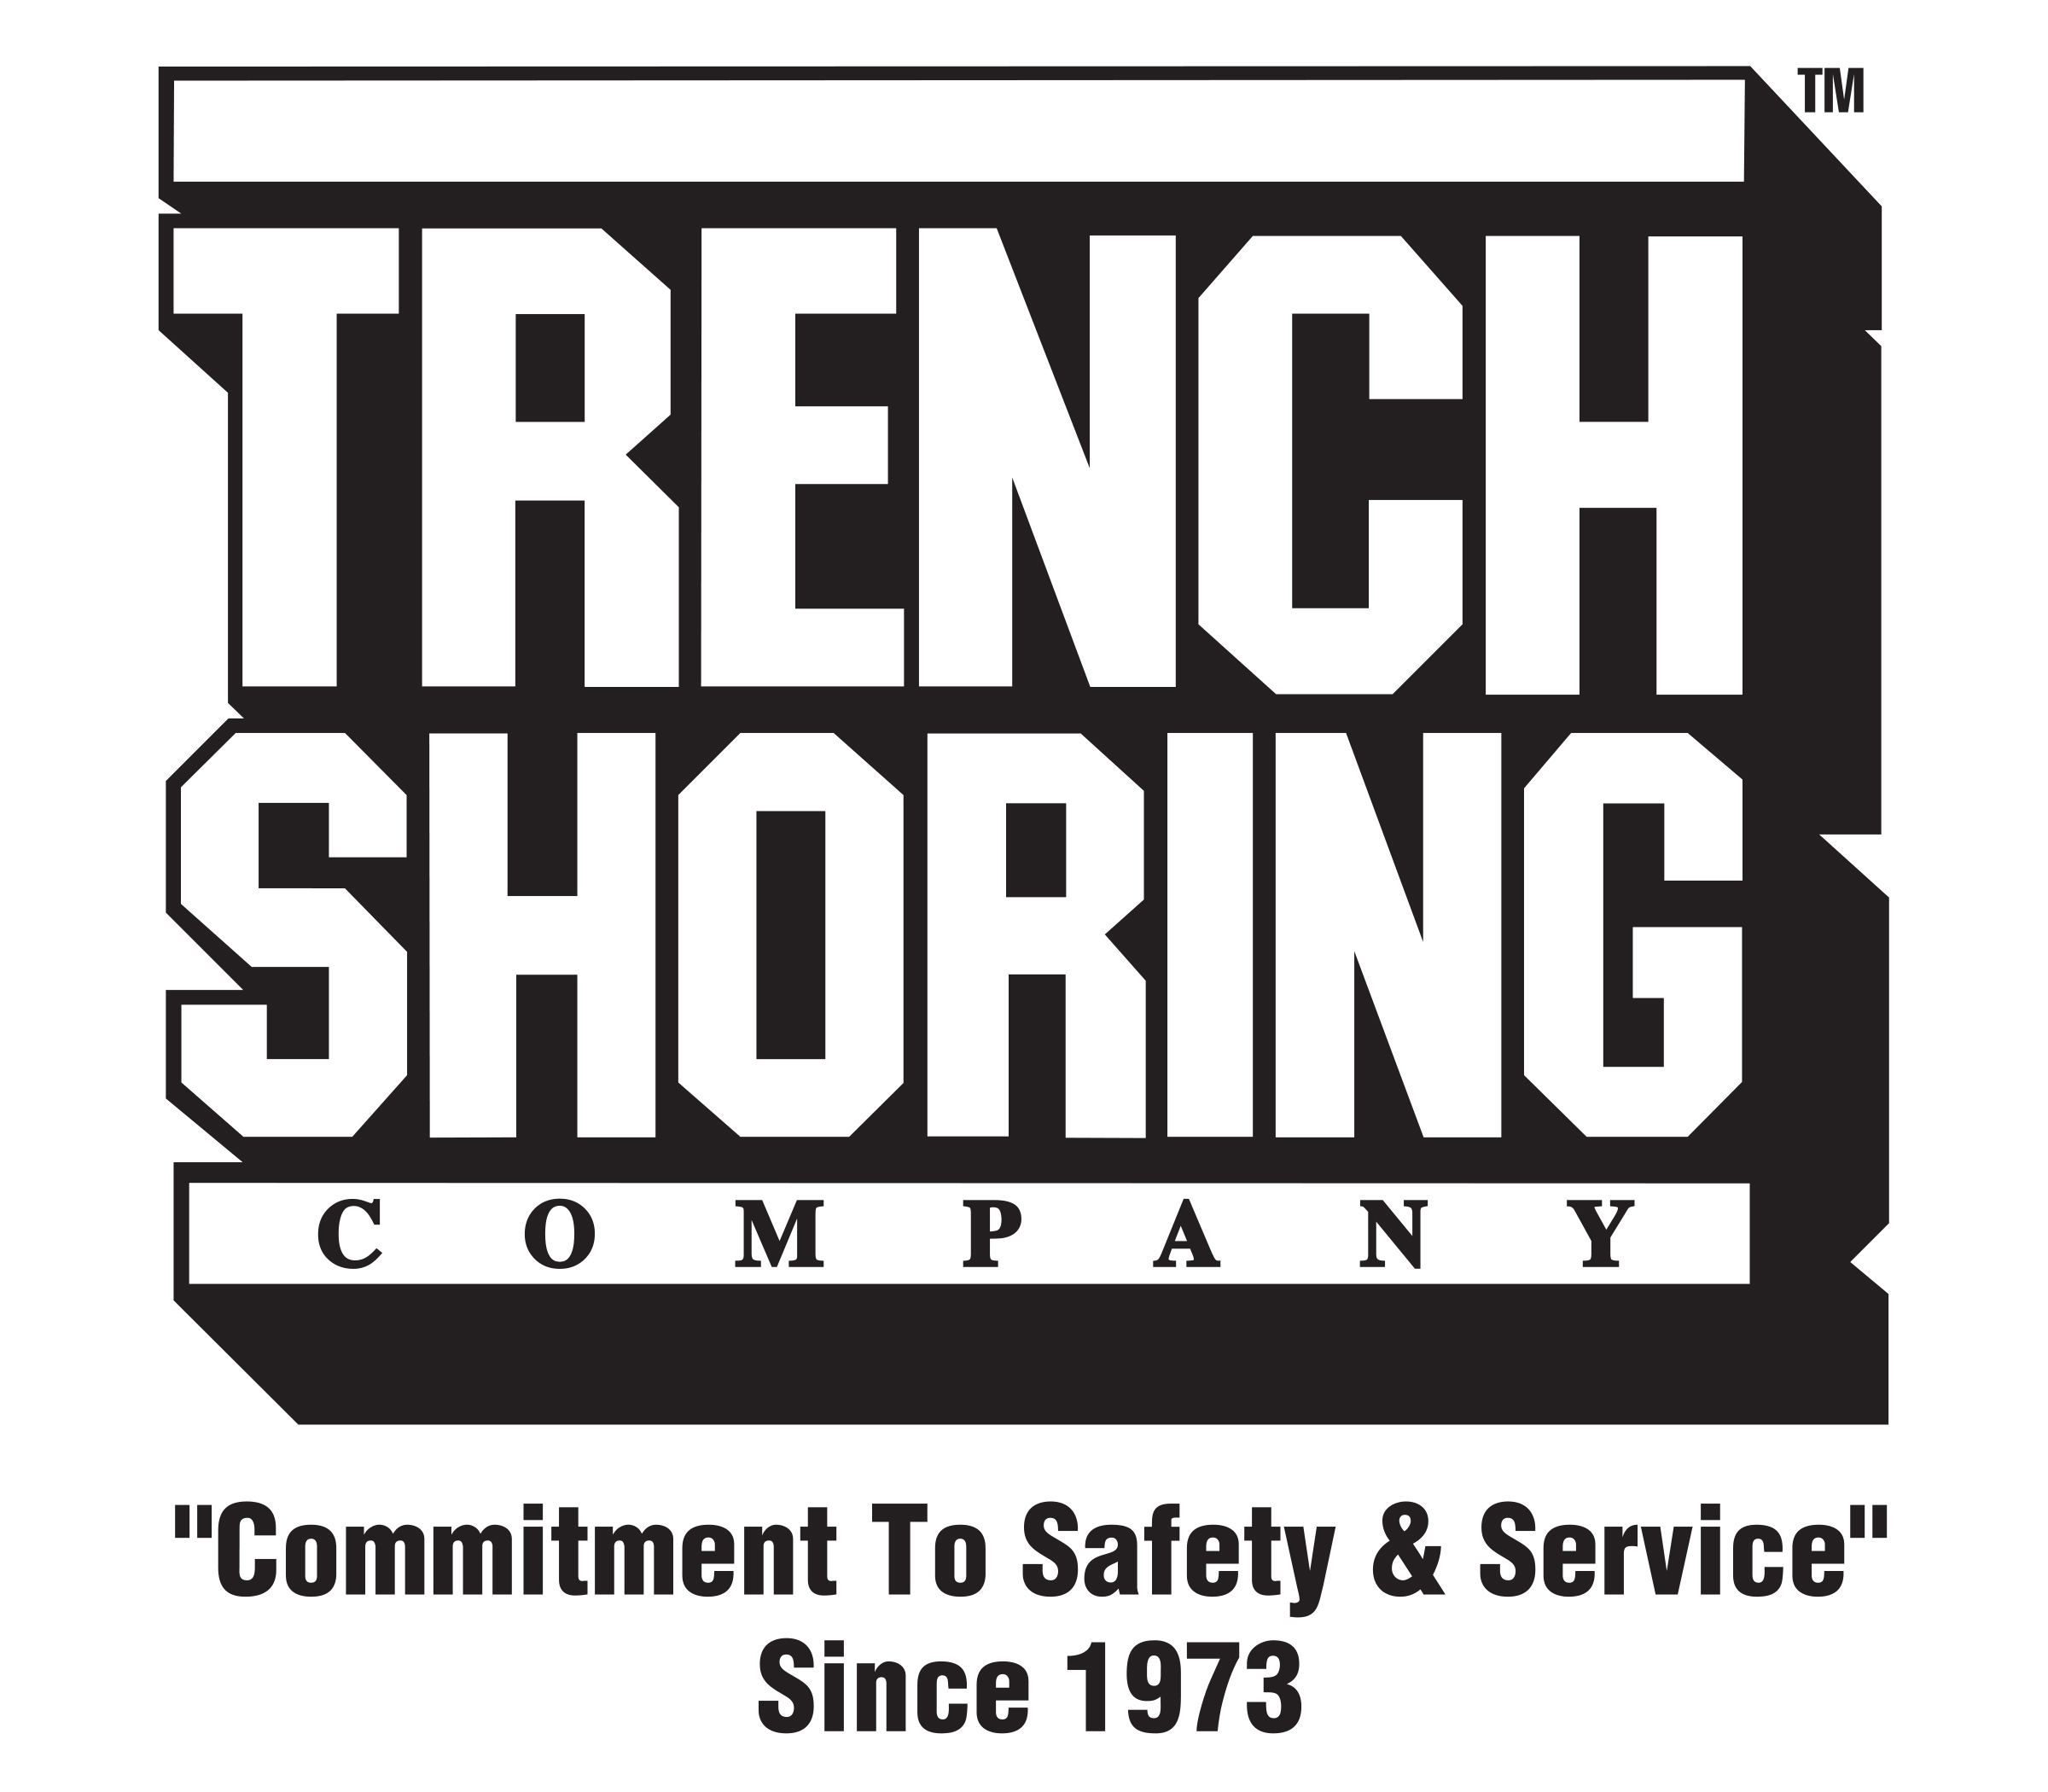 94. Trench Shoring Company